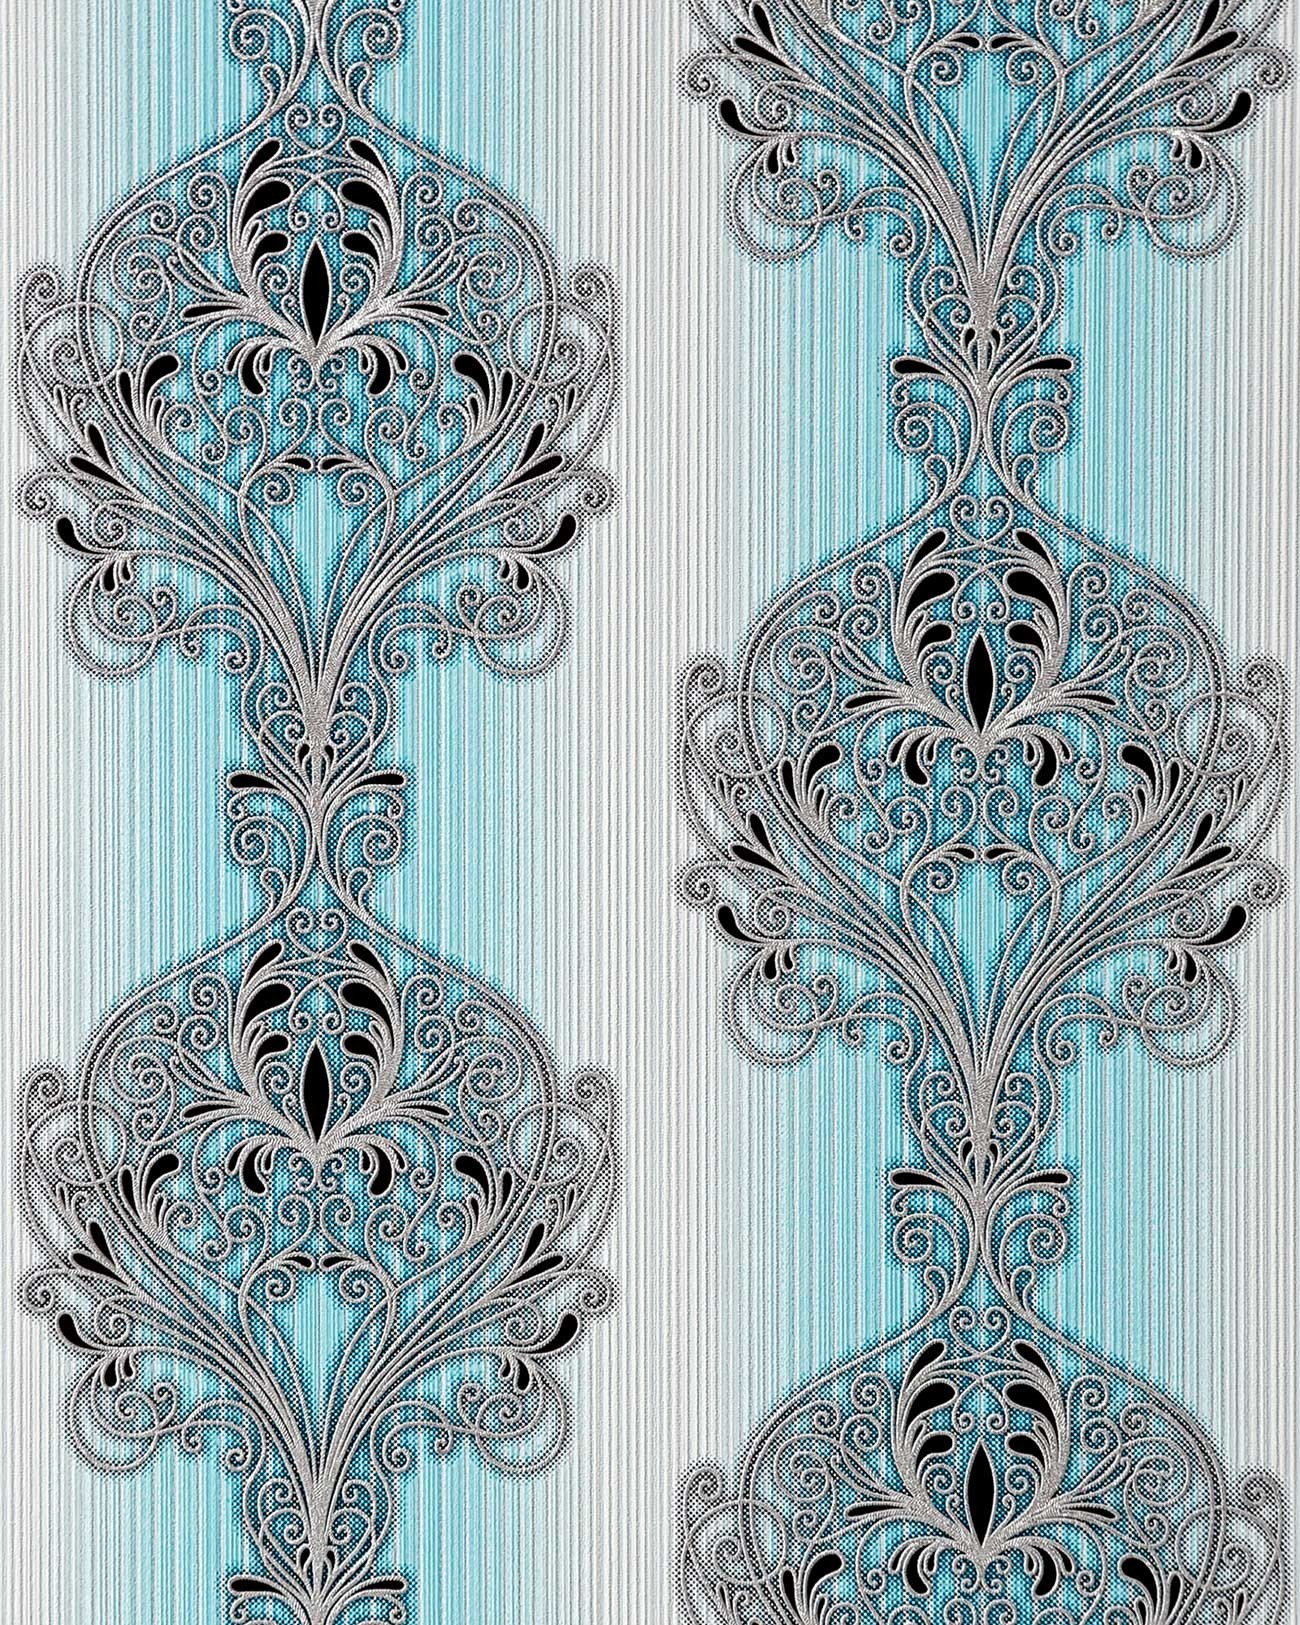 Barock Tapete T?rkis Wei? : Turquoise Silver and Black Wallpaper